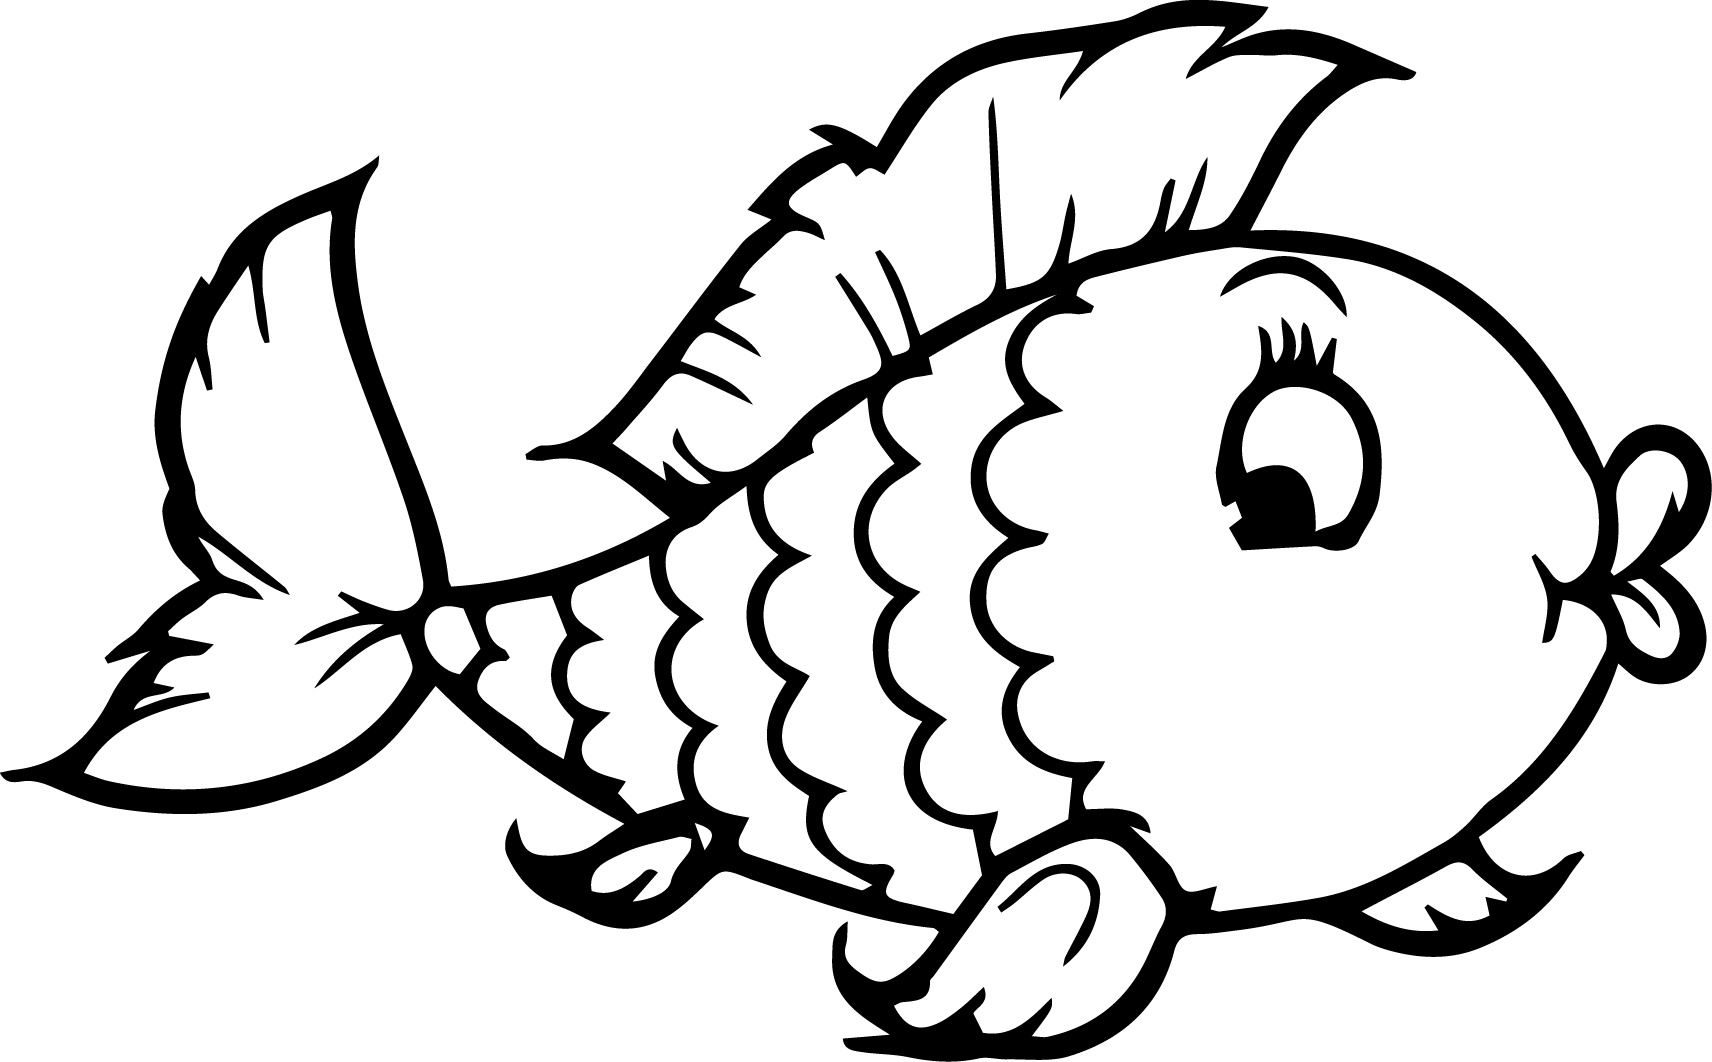 images of fish for colouring fish coloring pages for kids preschool and kindergarten images for of colouring fish